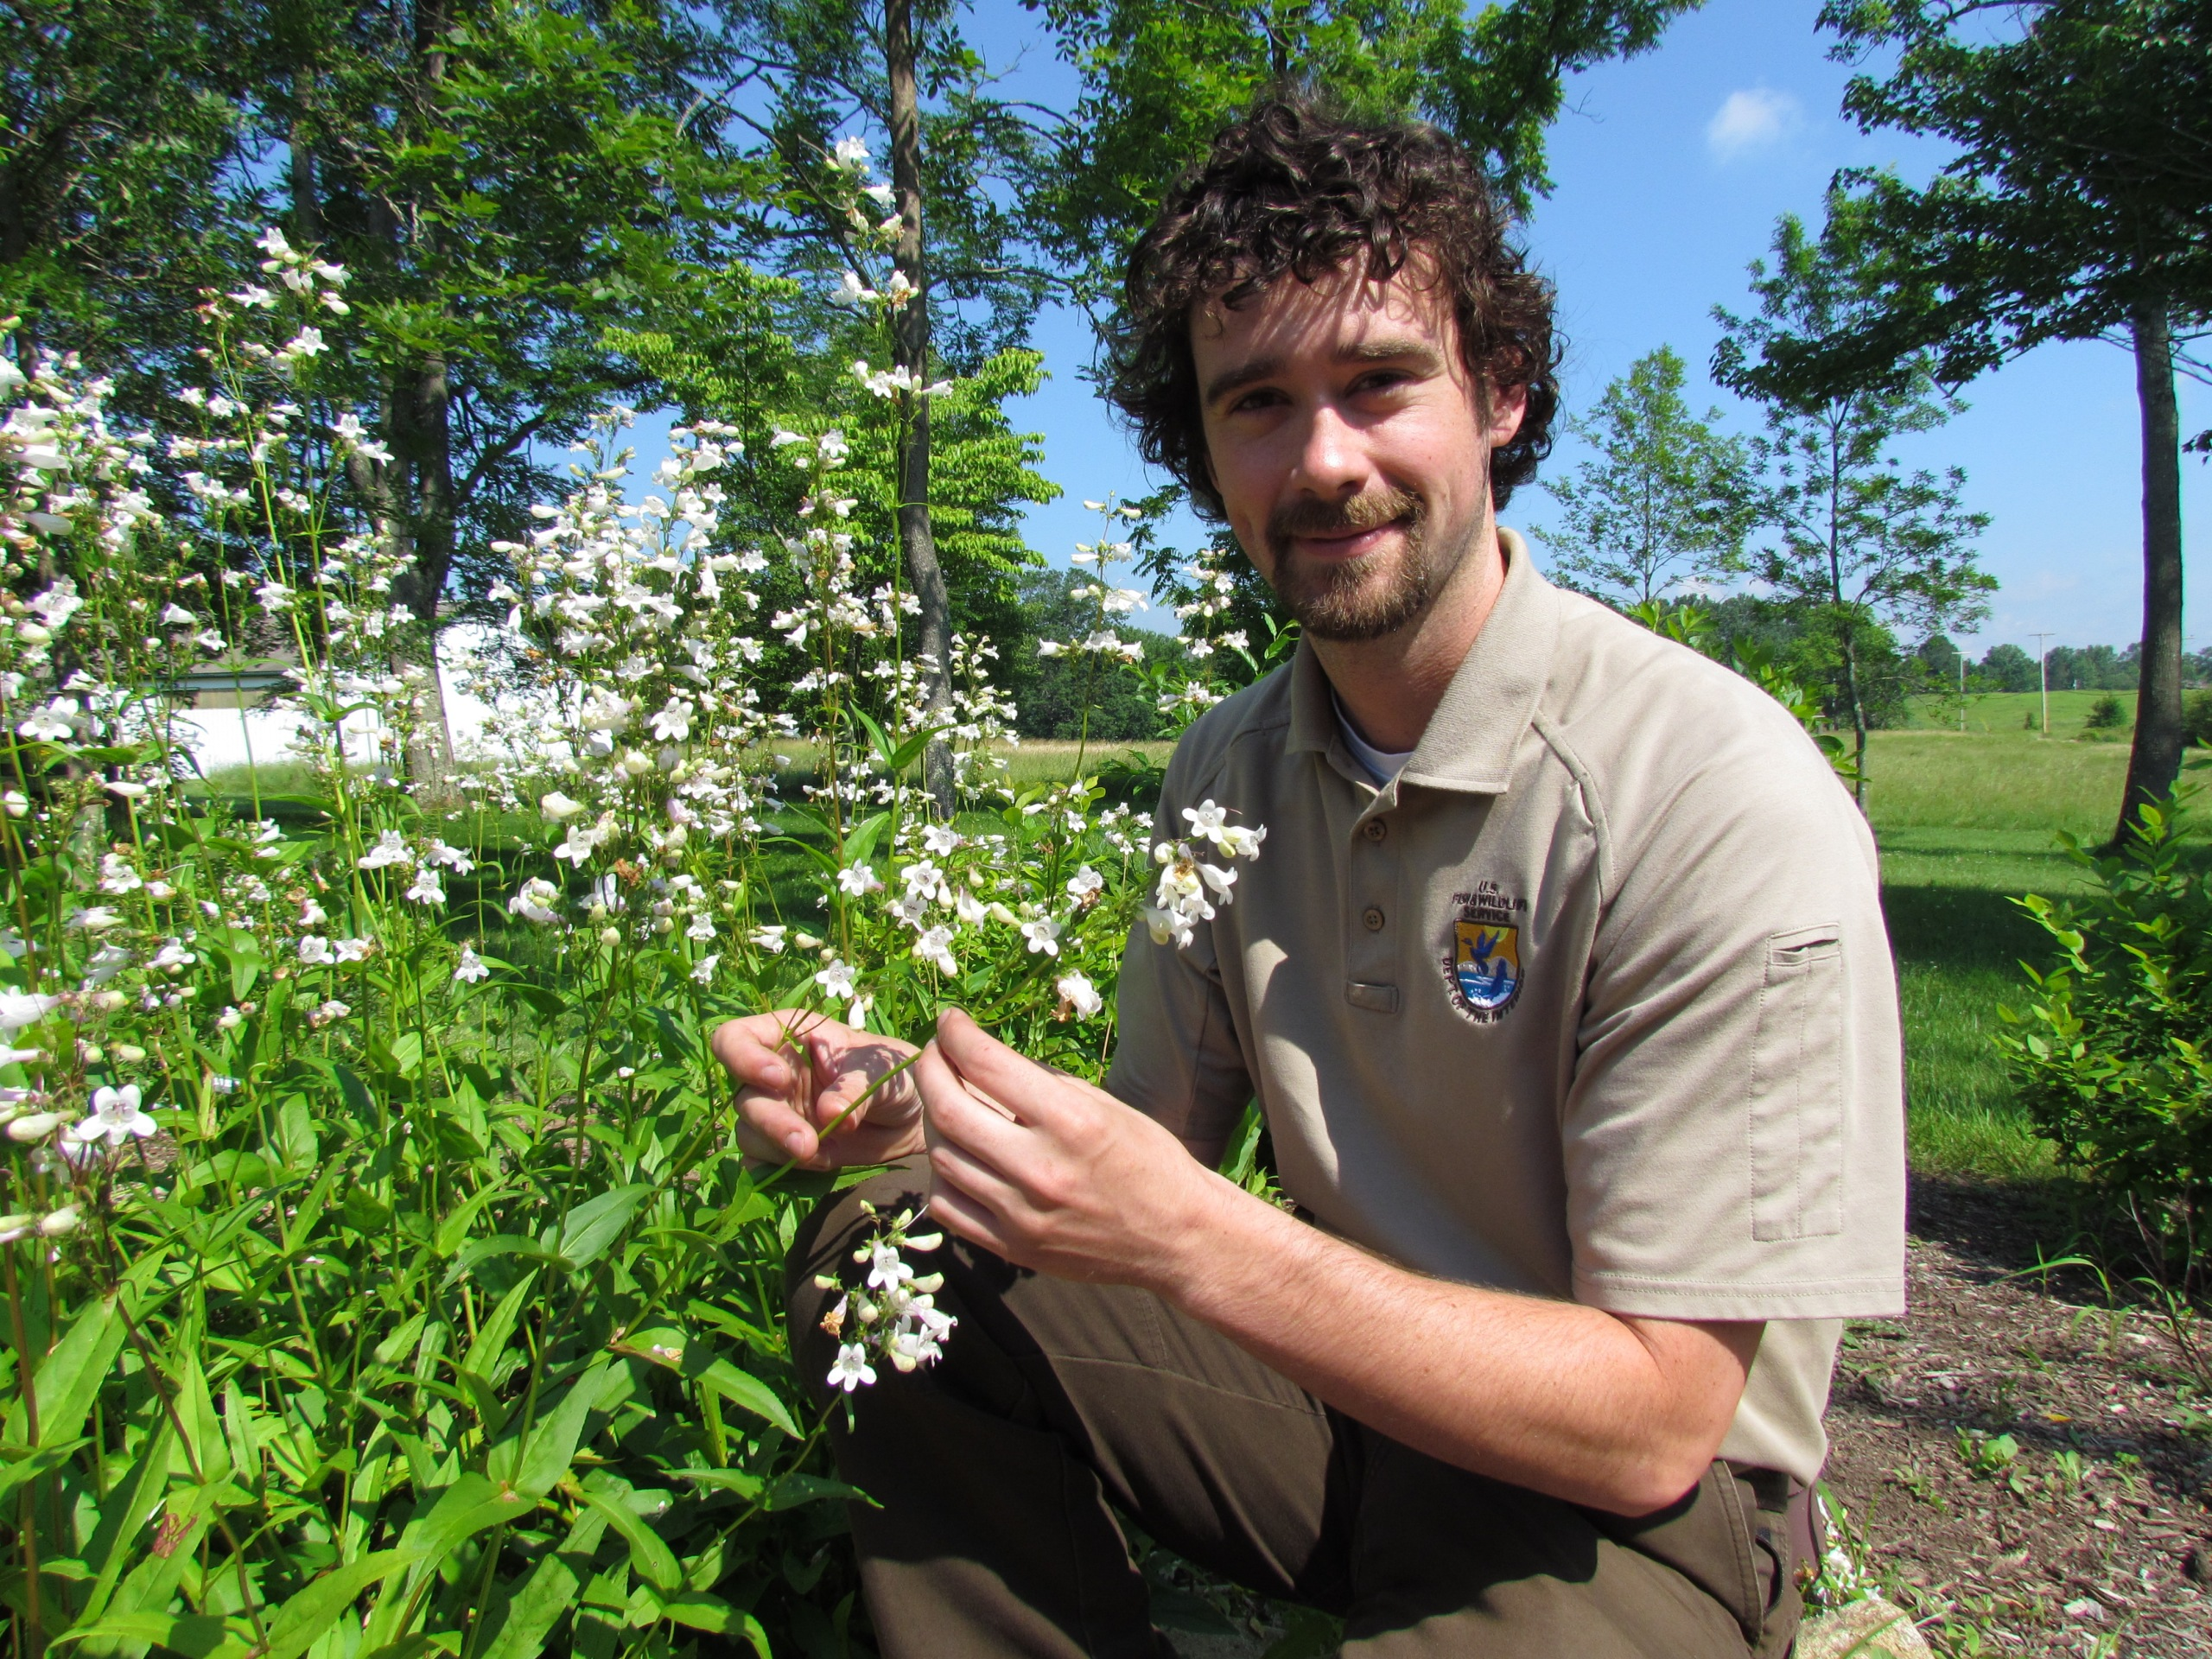 Visitor services specialist Dave Sagan in one of the pollinator gardens at Great Swamp National Wildlife Refuge. Credit: USFWS